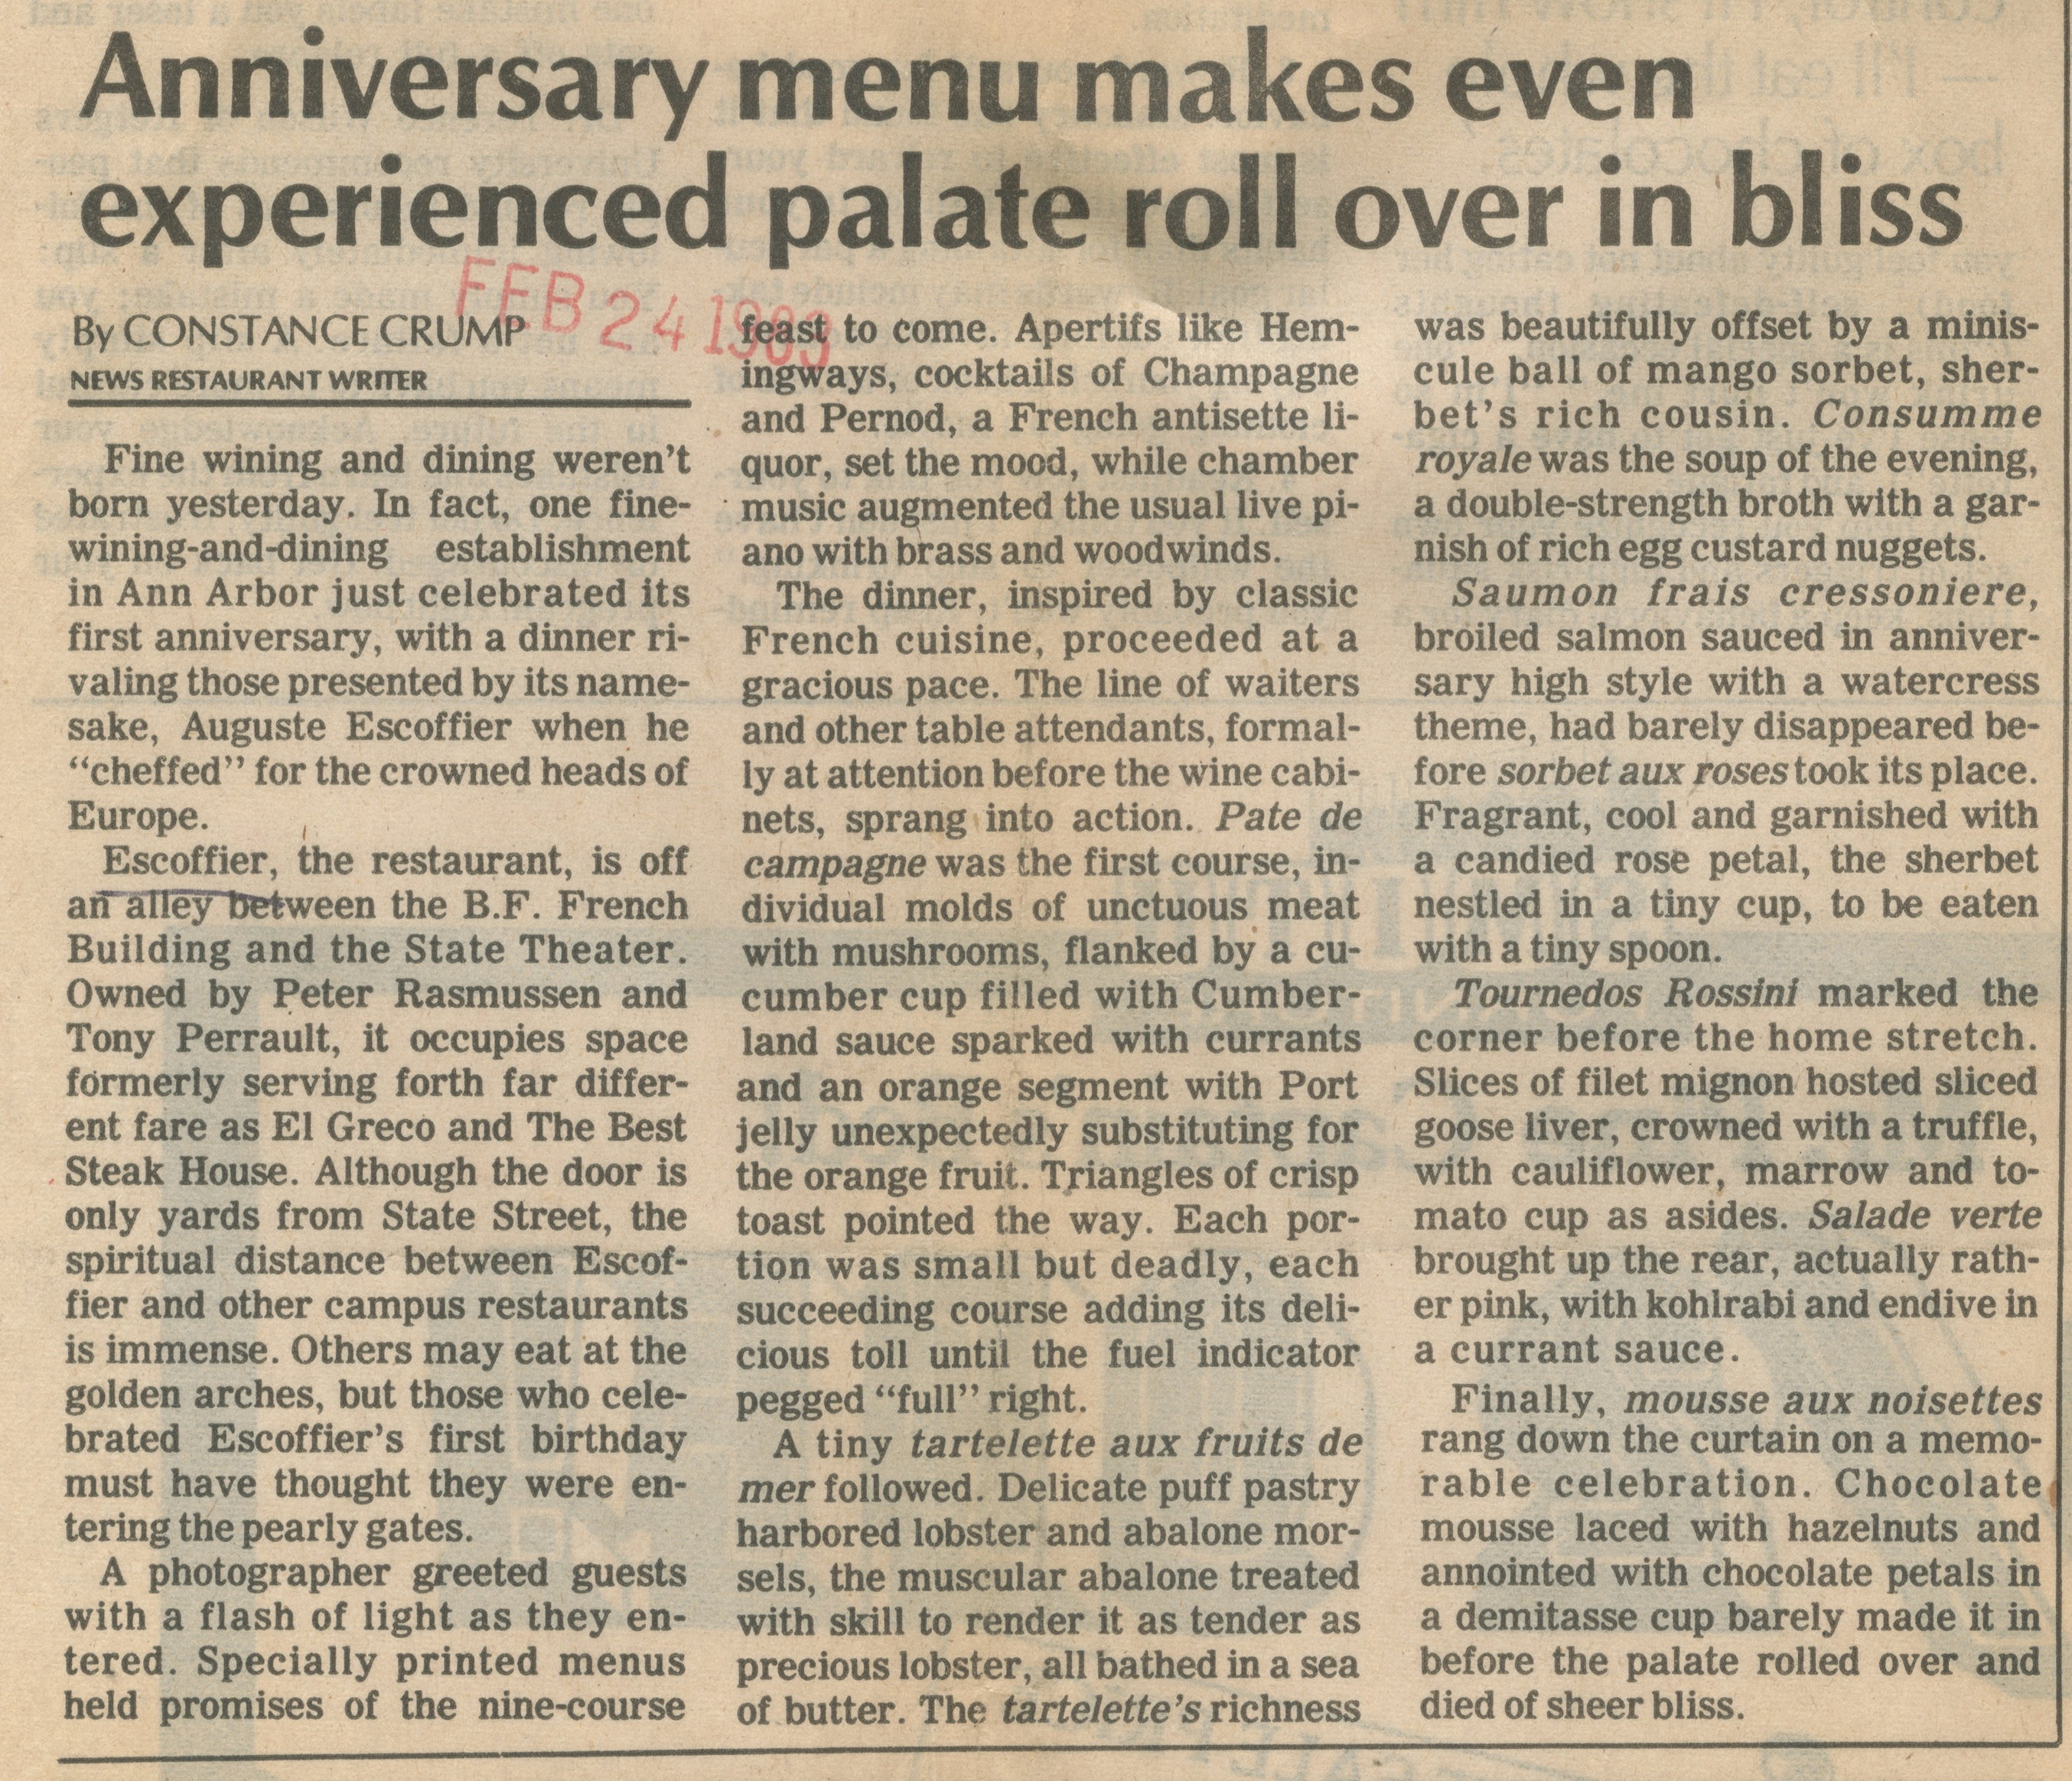 Anniversary Menu Makes Even Experienced Palate Roll Over In Bliss image